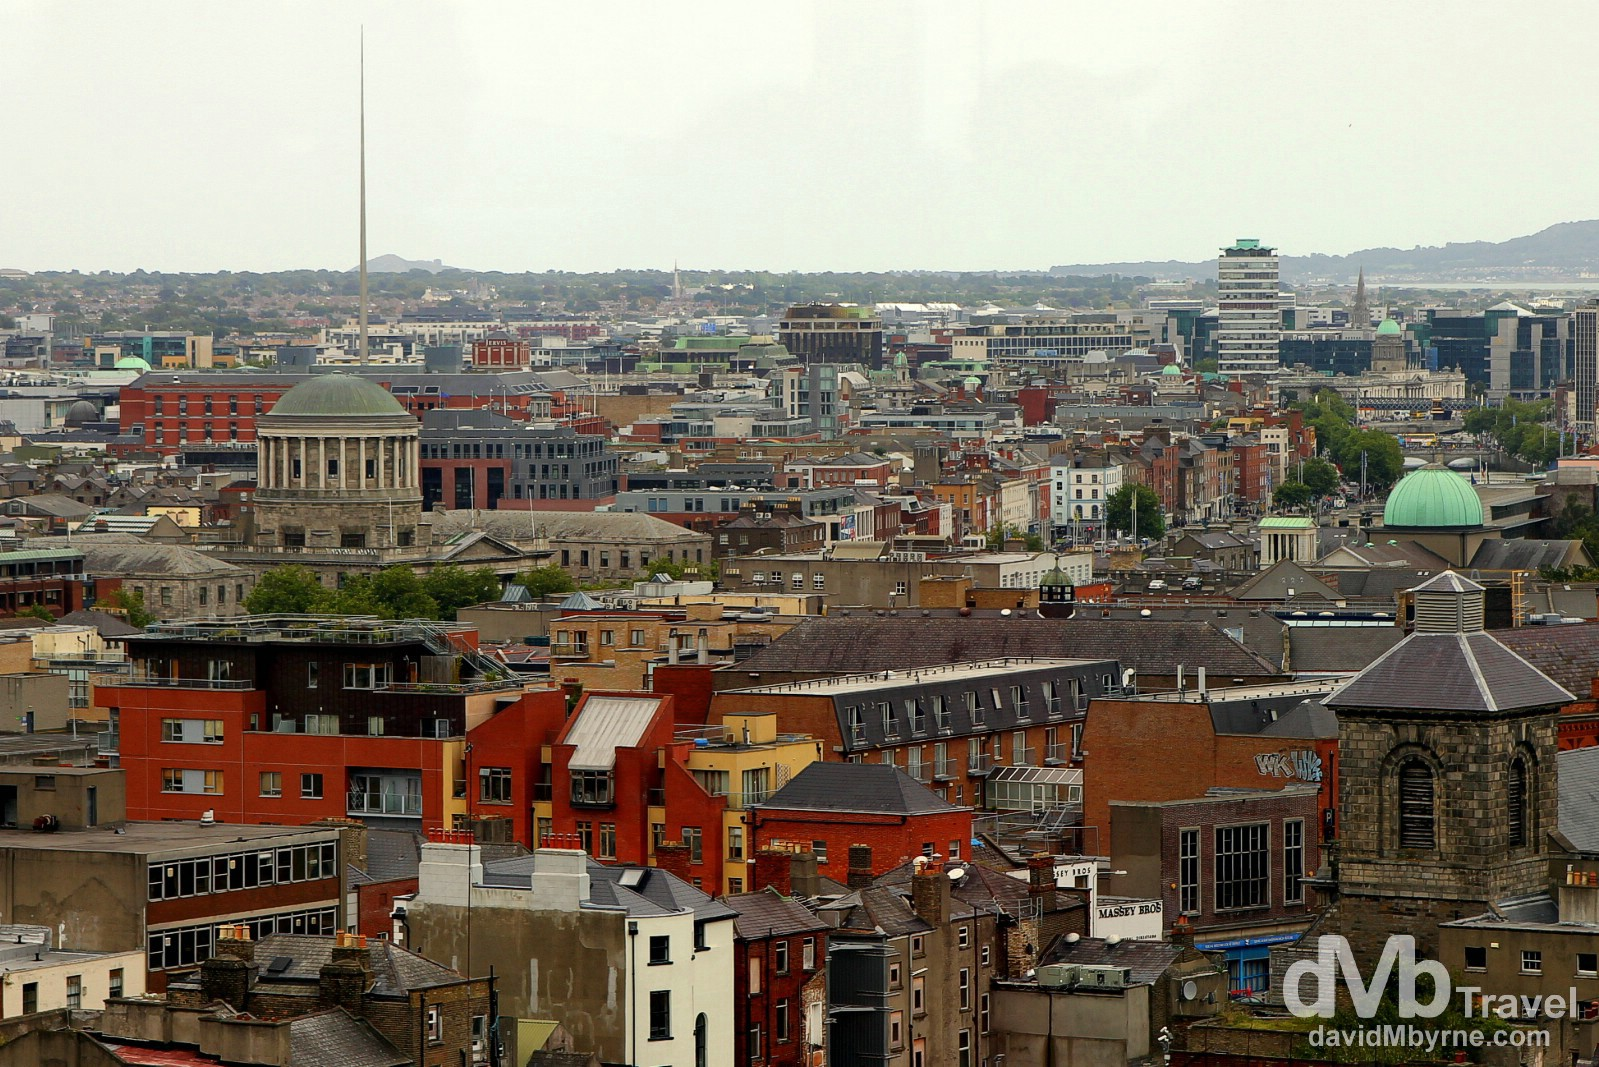 A section of Dublin as seen from the Gravity Bar in the Guinness Storehouse, St. Jame's Gate, Dublin, Ireland. September 1, 2014.